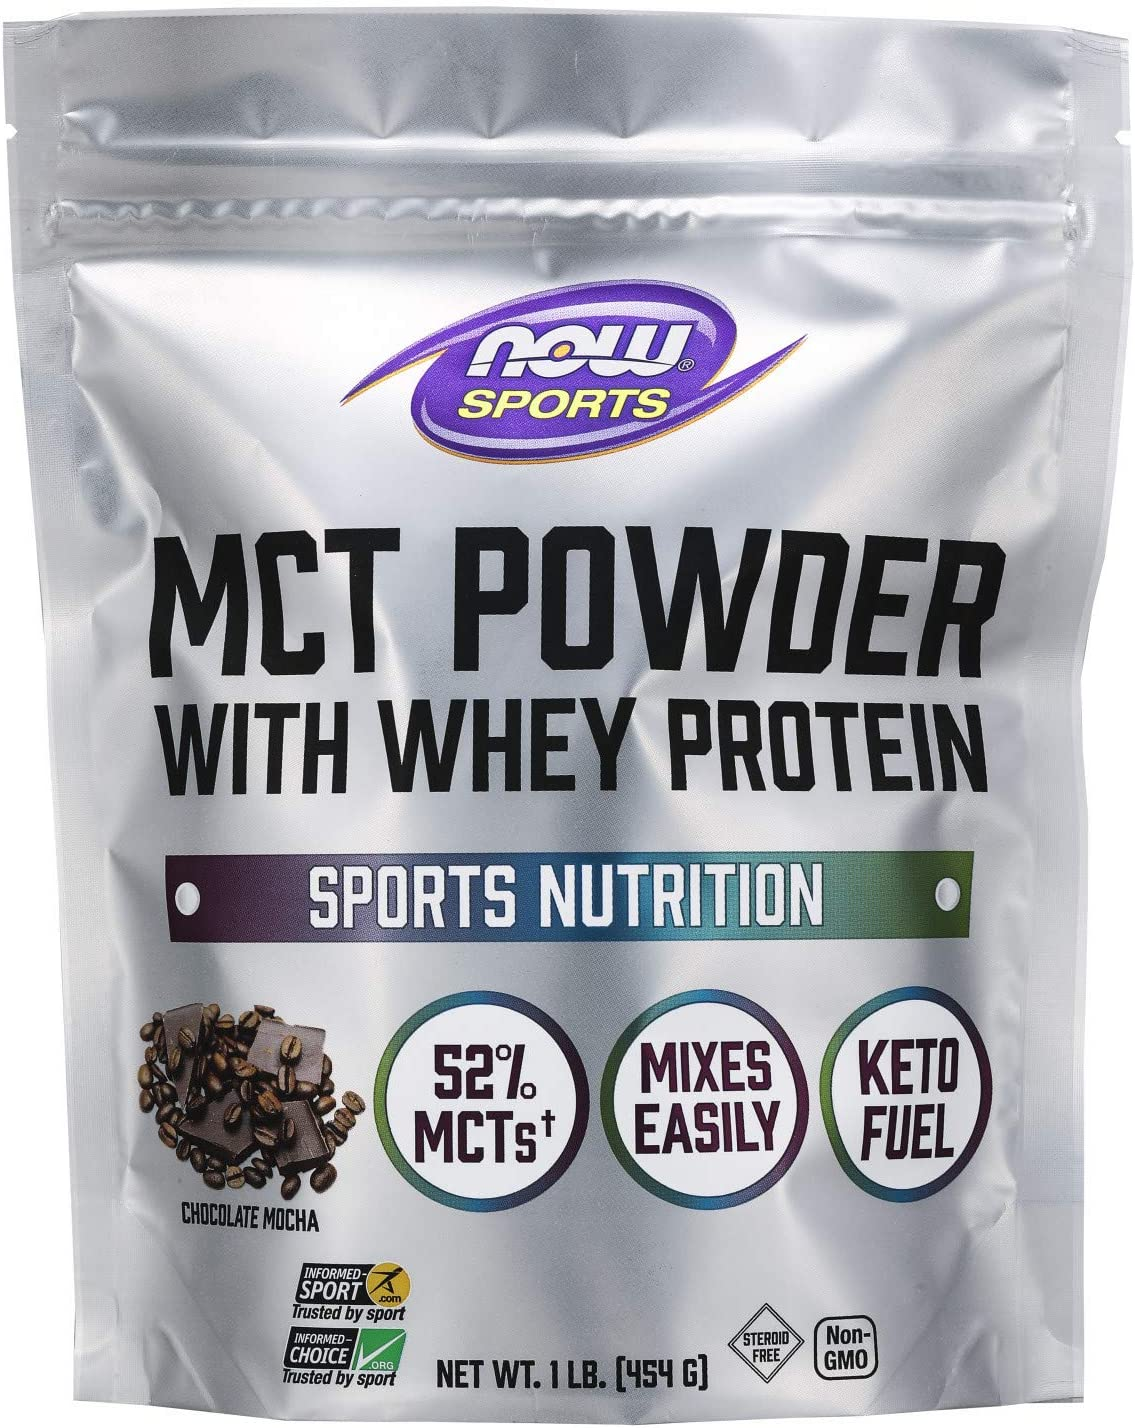 Max 86% OFF NOW Overseas parallel import regular item Sports Nutrition MCT Powder Isolate 52% Protein with Whey